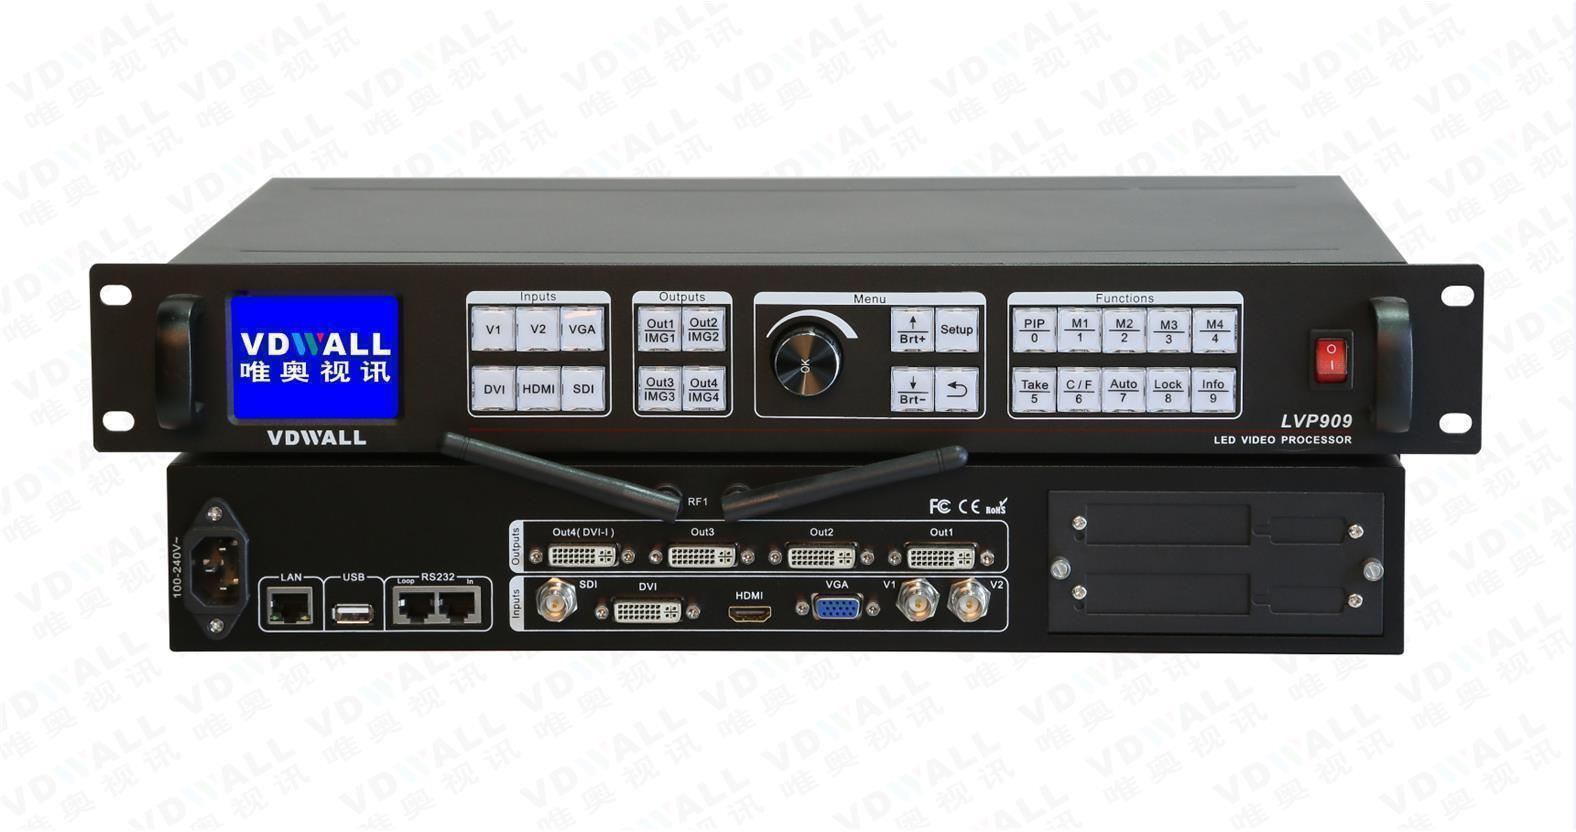 LVP909 LED display Video Processor